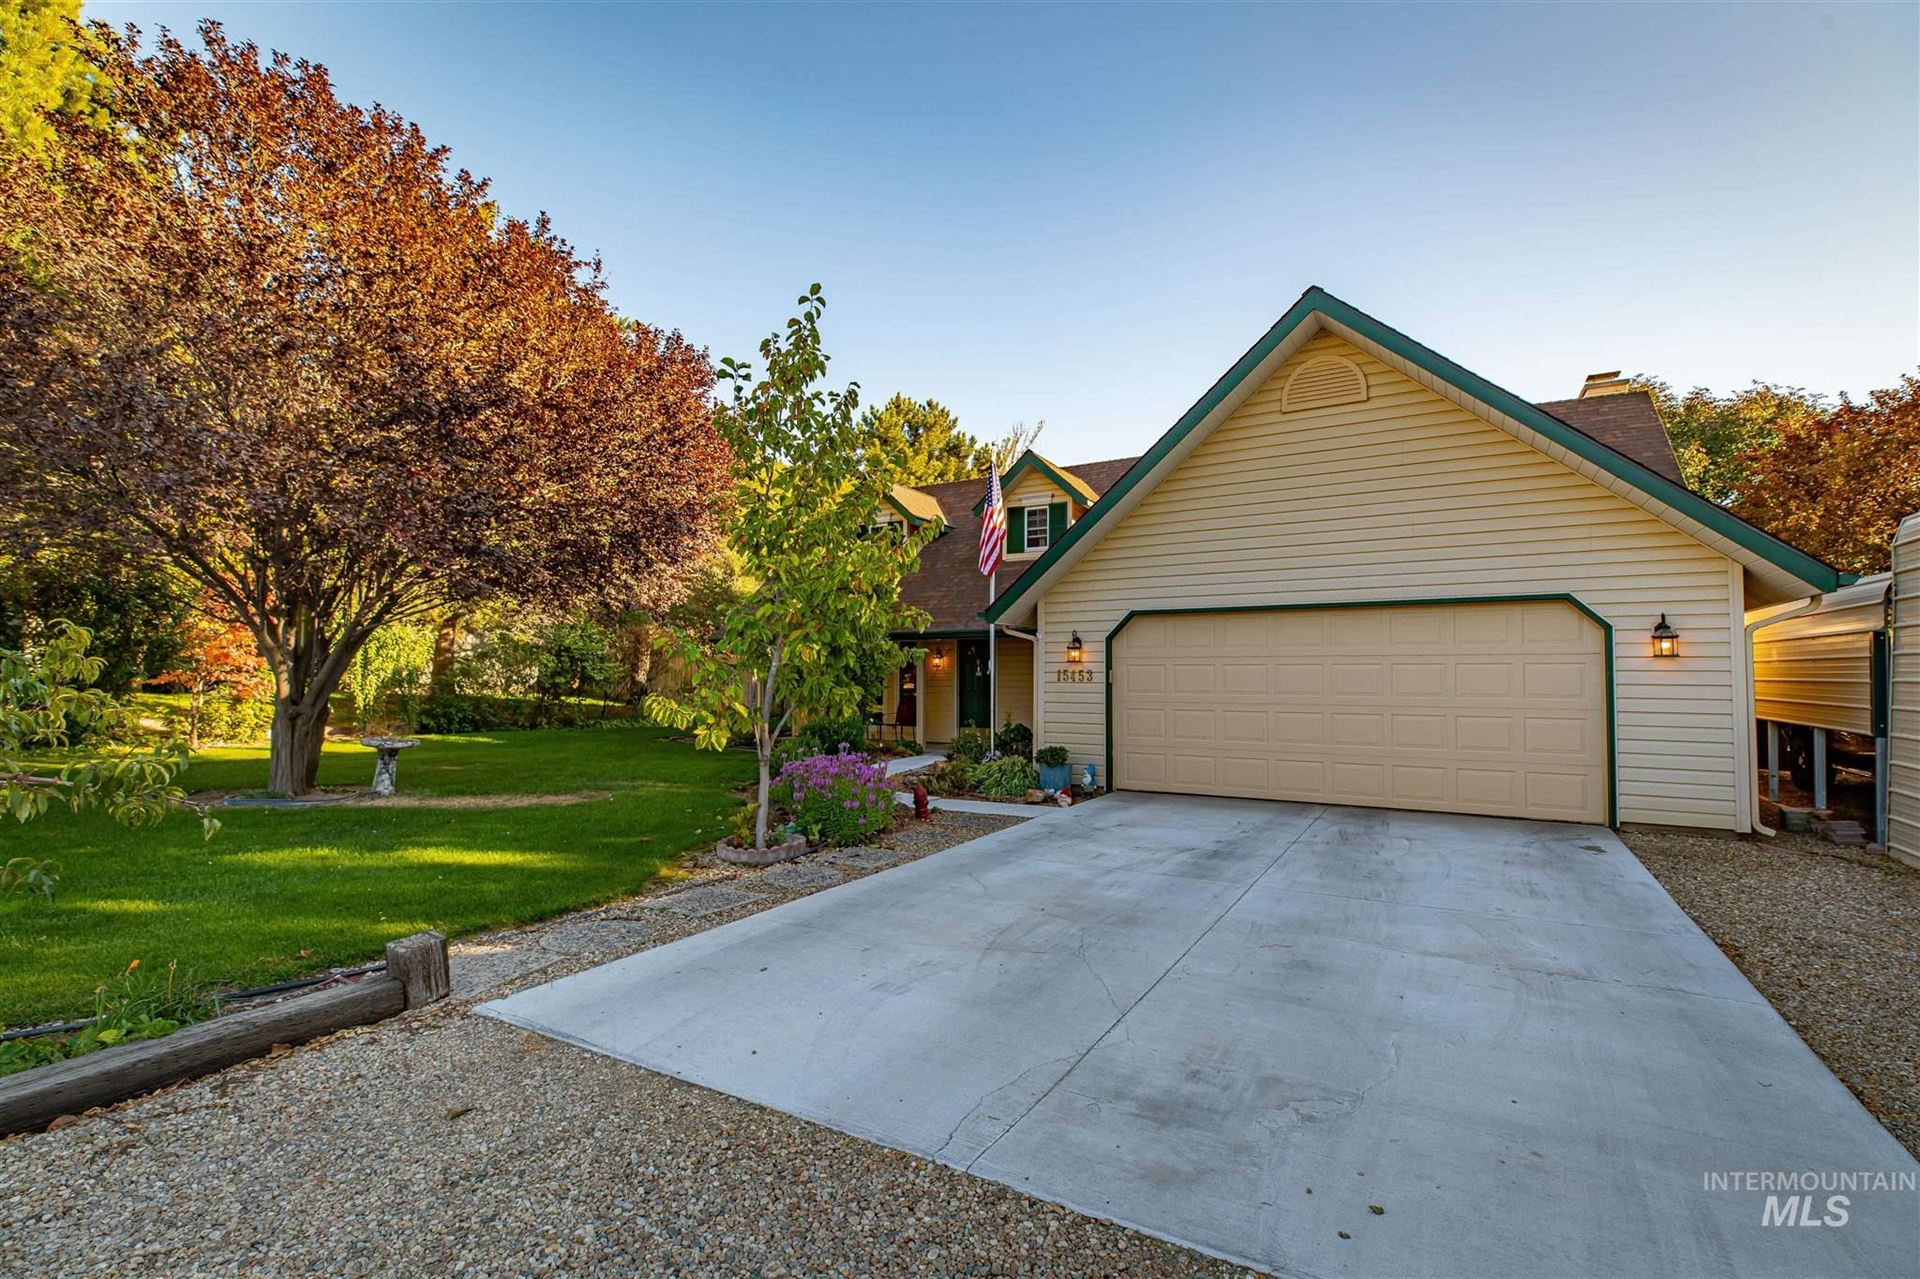 Photo of 15453 Rosewood St, Caldwell, ID 83607 (MLS # 98806815)